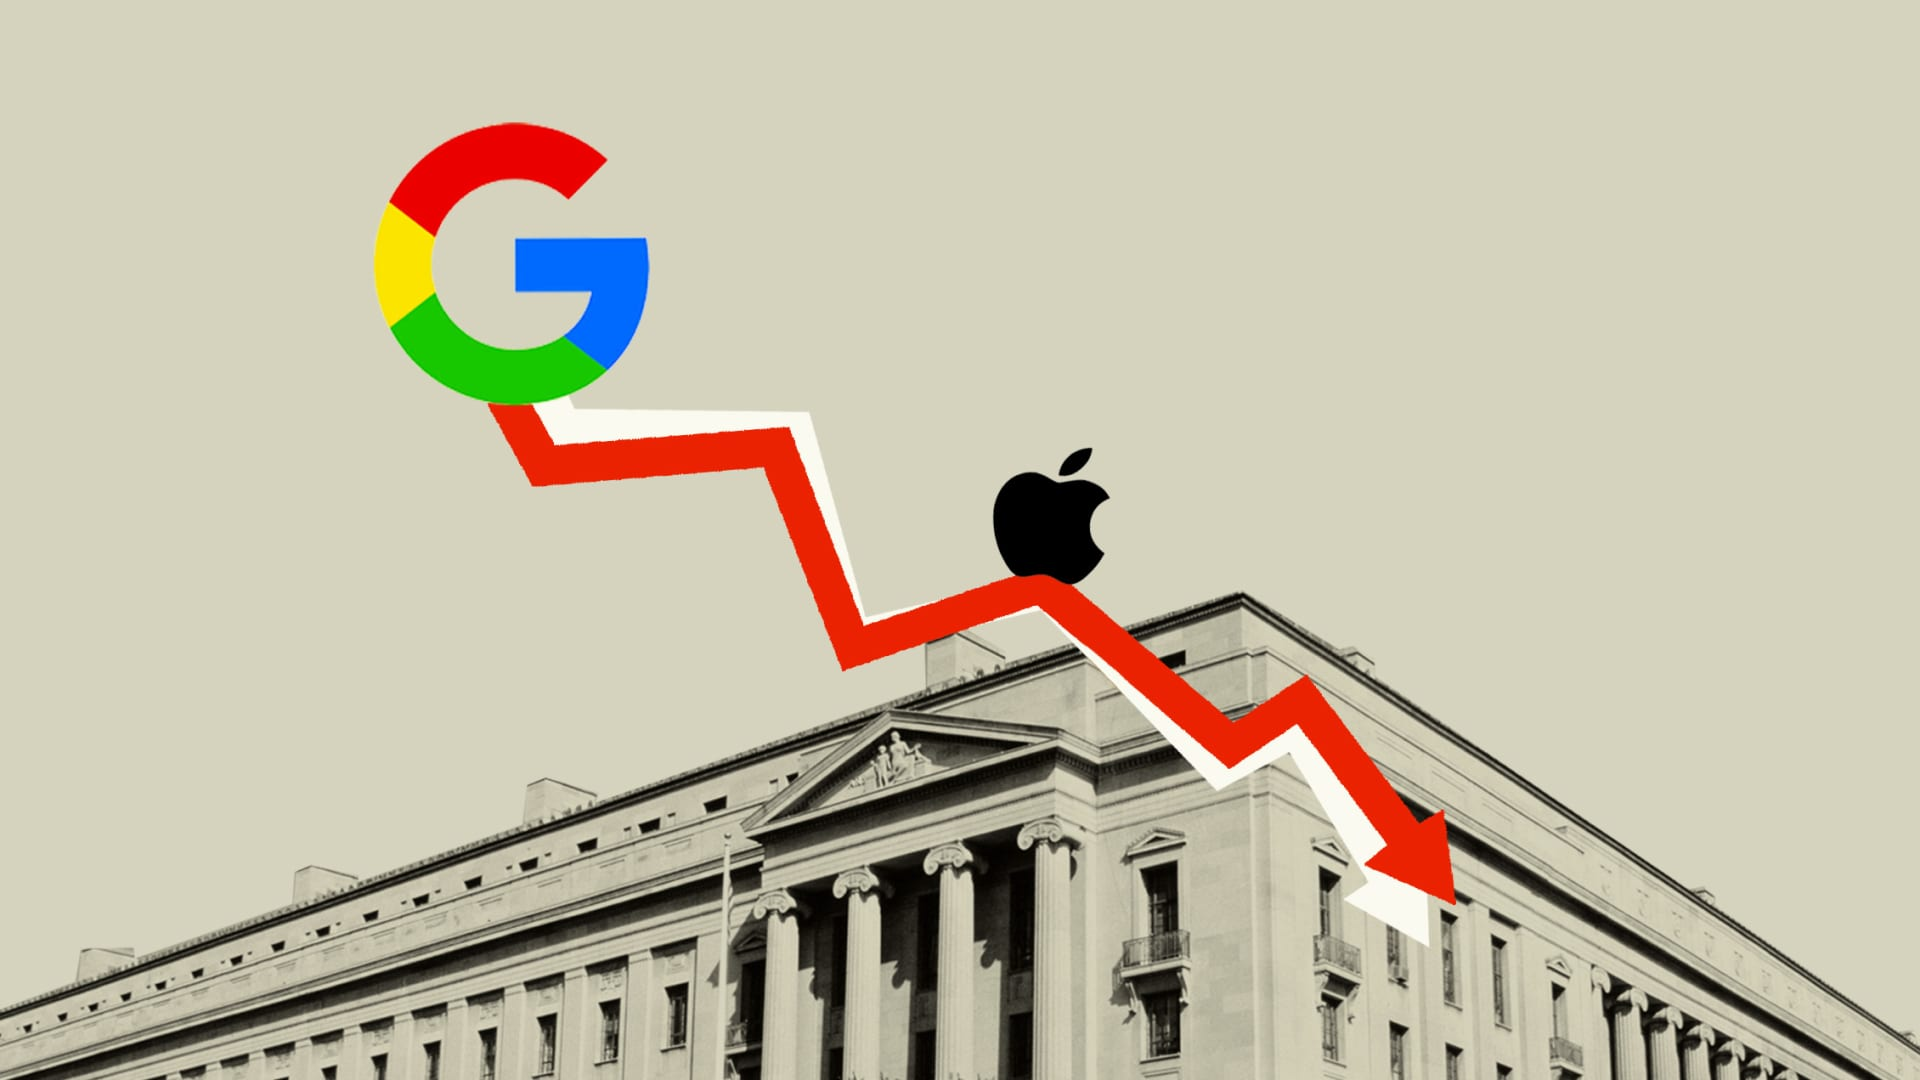 Why Apple Has the Most to Lose From Google's Fight With the Justice Department